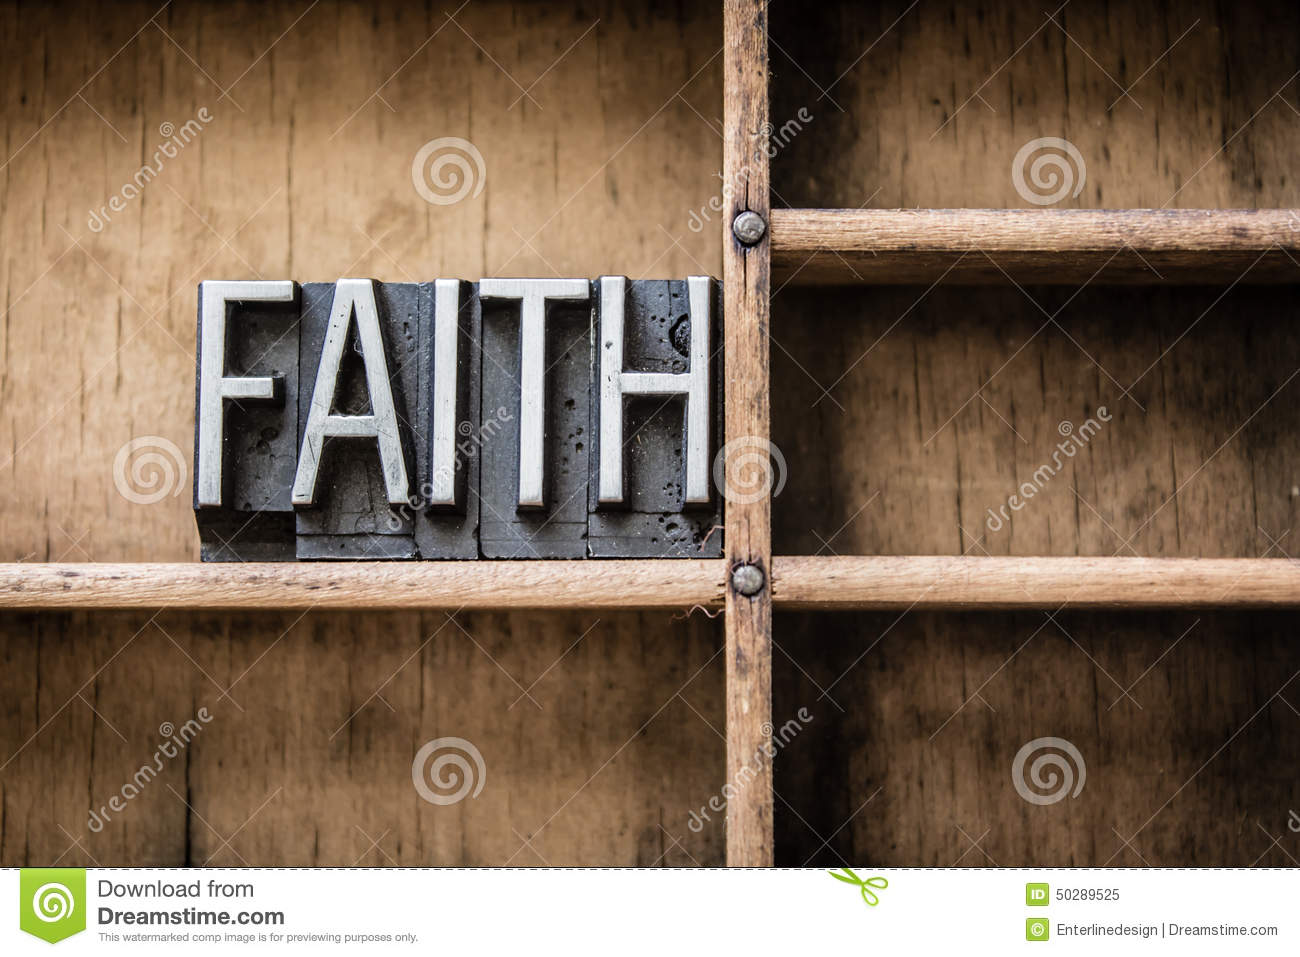 Faith Letterpress Type In Drawer Stock Image - Image of concept